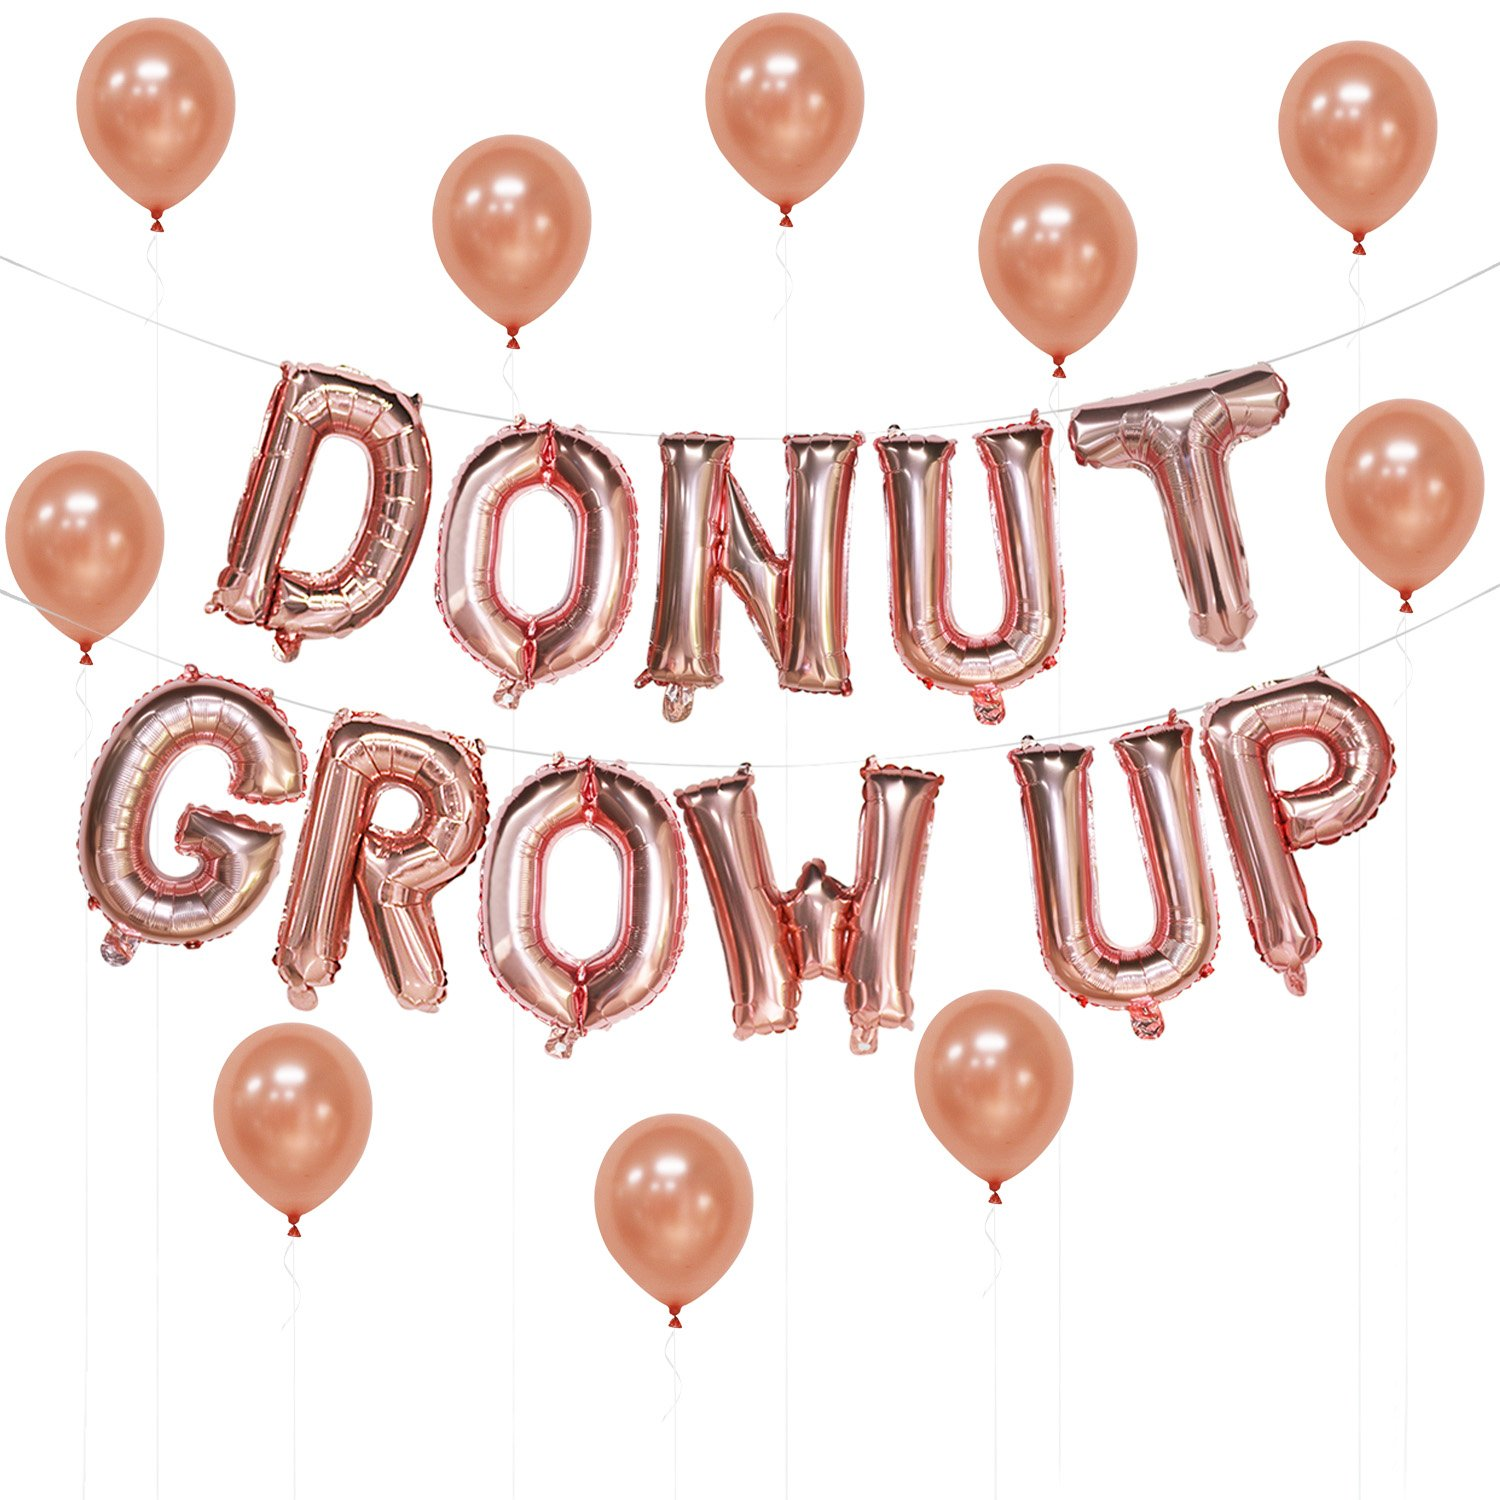 Donut Grow up Rose Gold Balloons Banner | Donut Grow up Birthday Balloons Decorations | Donut Theme Party Supplies | Free 10pcs Latex Balloons